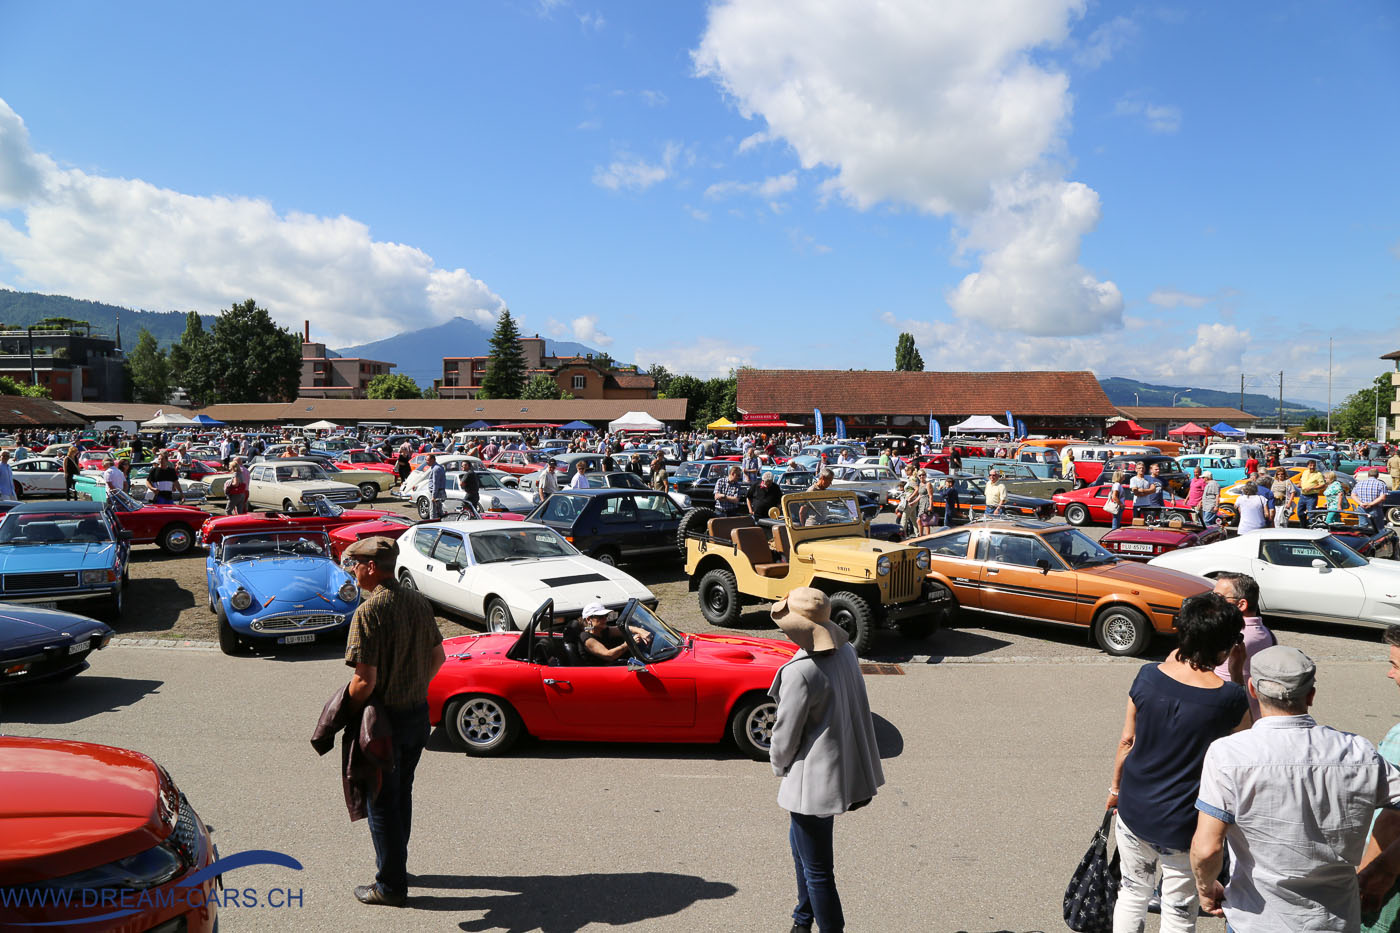 OSMT - Oldtimer Sunday Morning Treffen Zug, Juli 2016